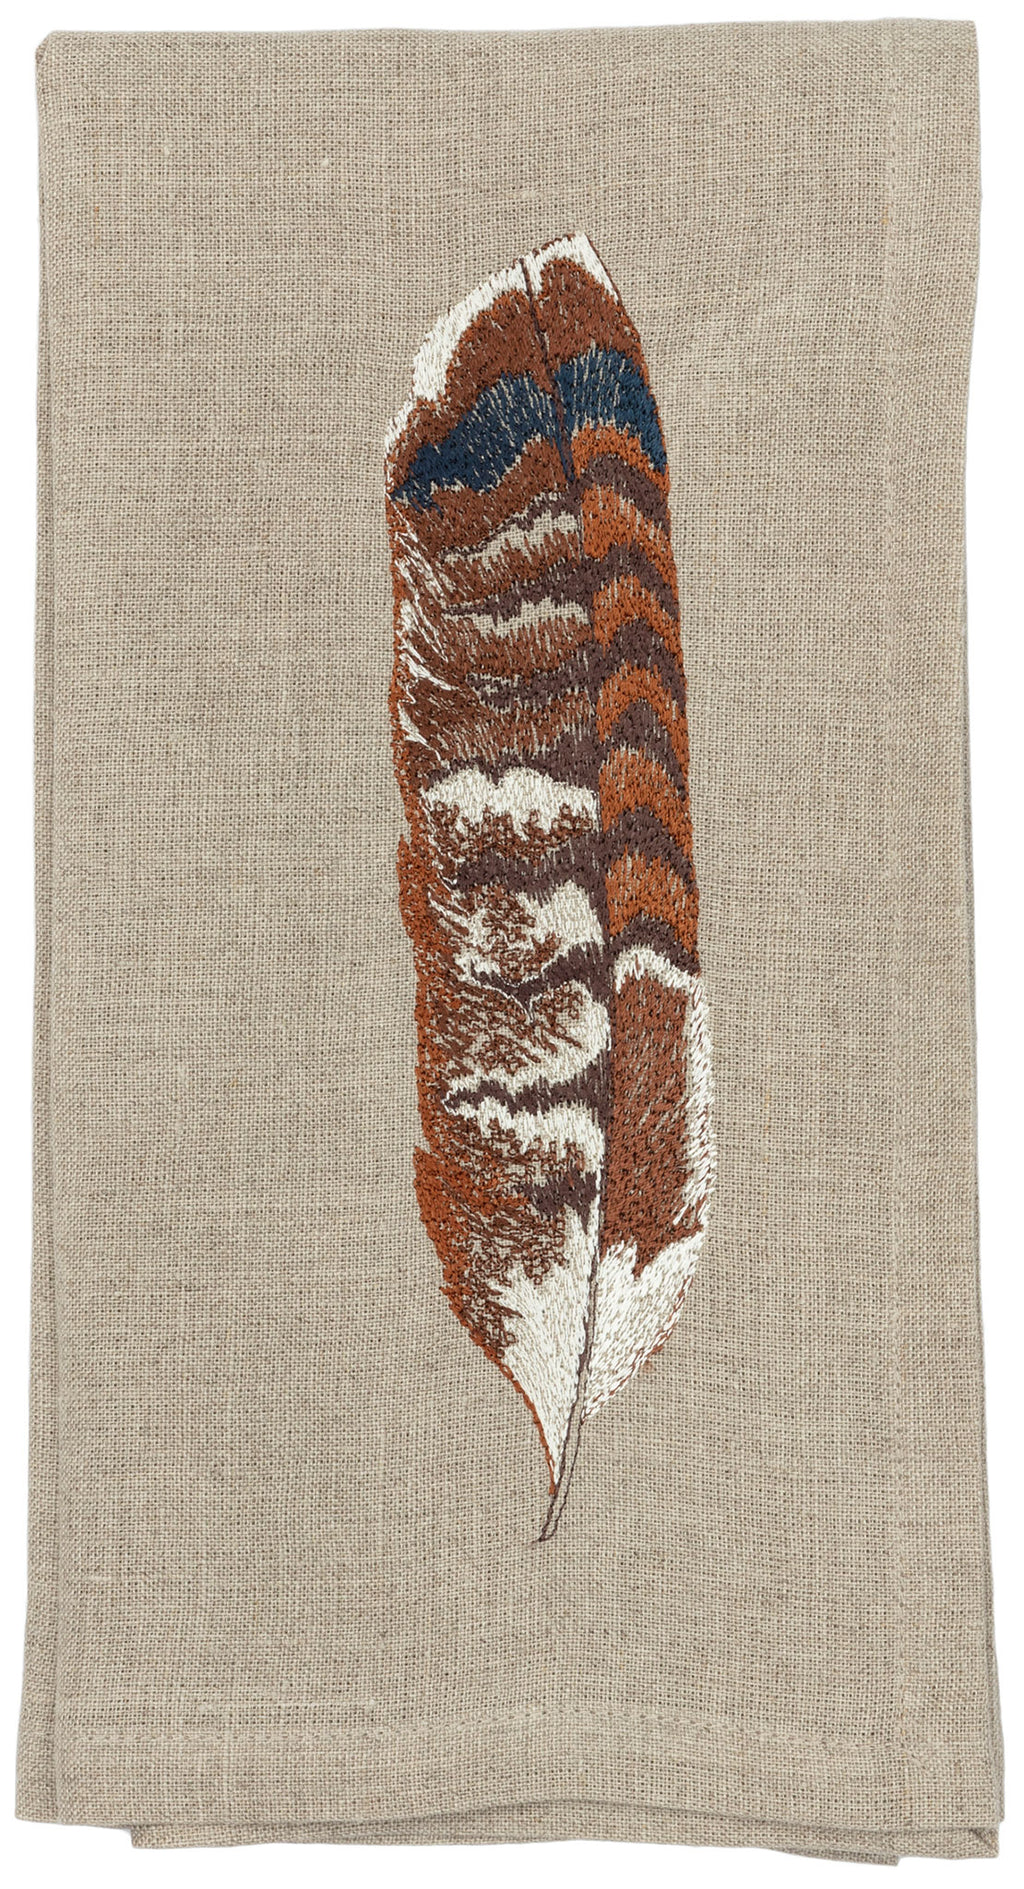 Dinner napkin with corner embroidery of red tailed hawk bird feather.